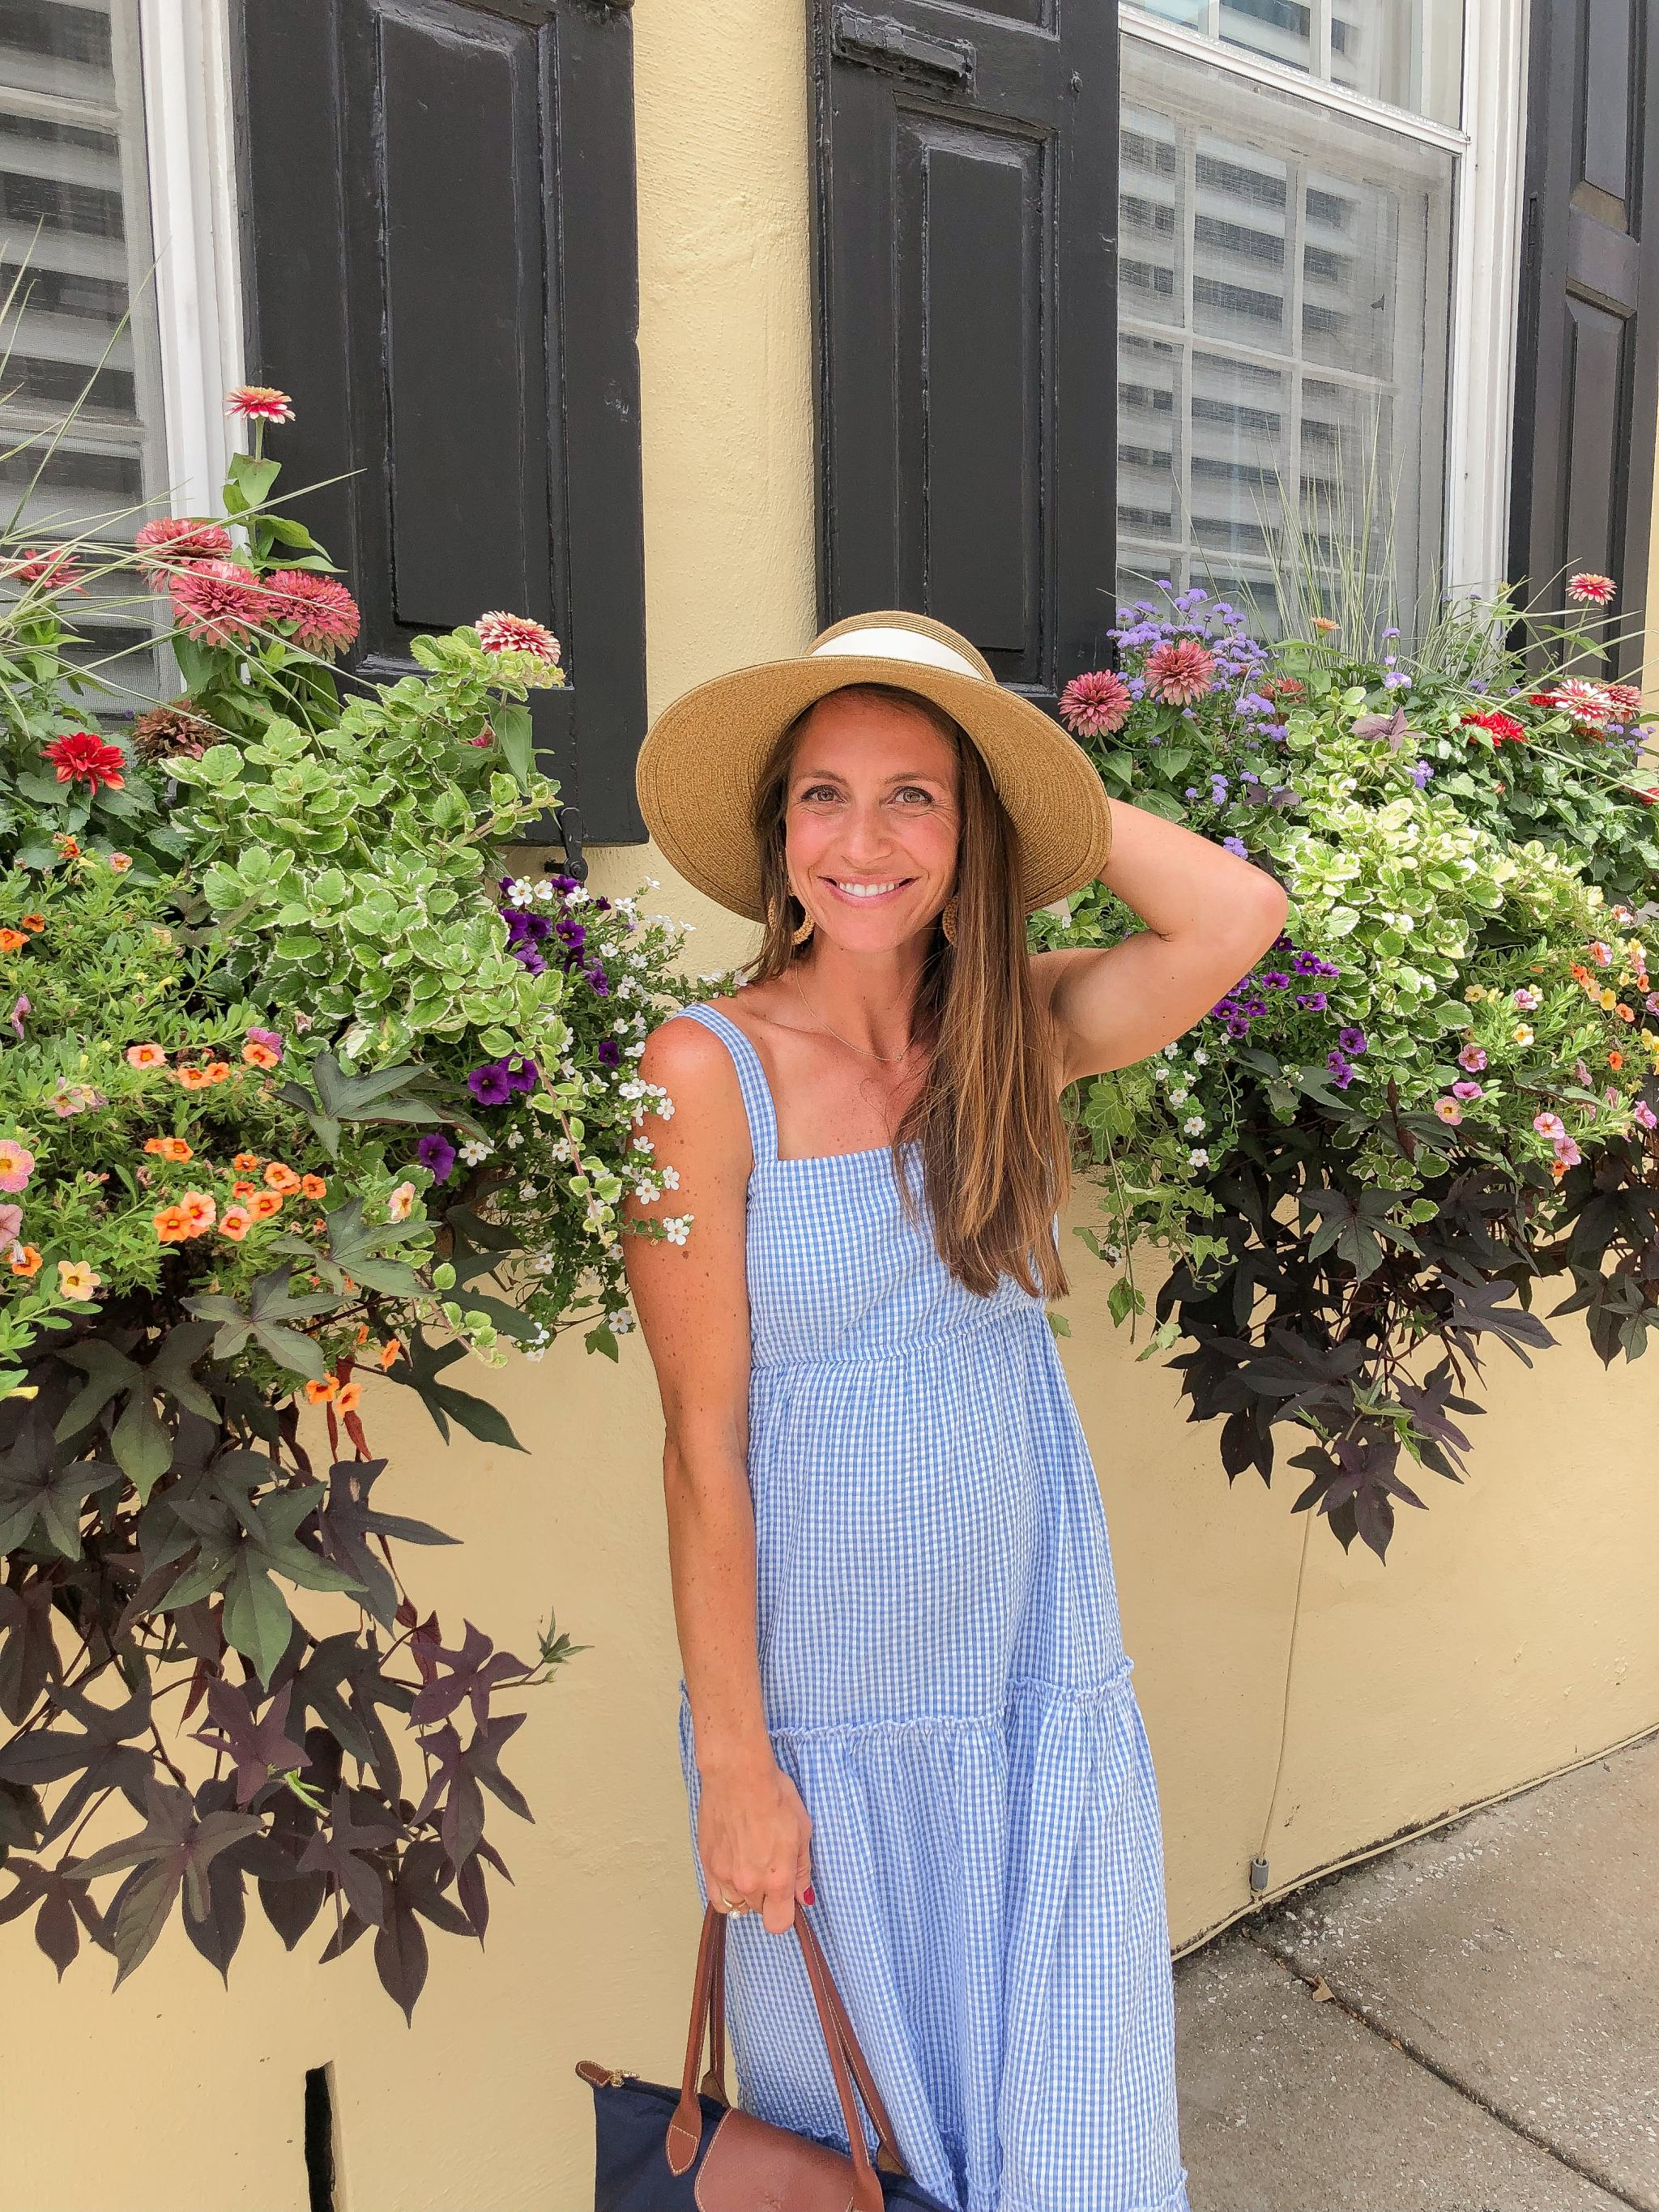 flower boxes in charleston - charleston flower boxes - madison mathews maxi dress - tuckernuck packable bow sun hat - things to do in charleston